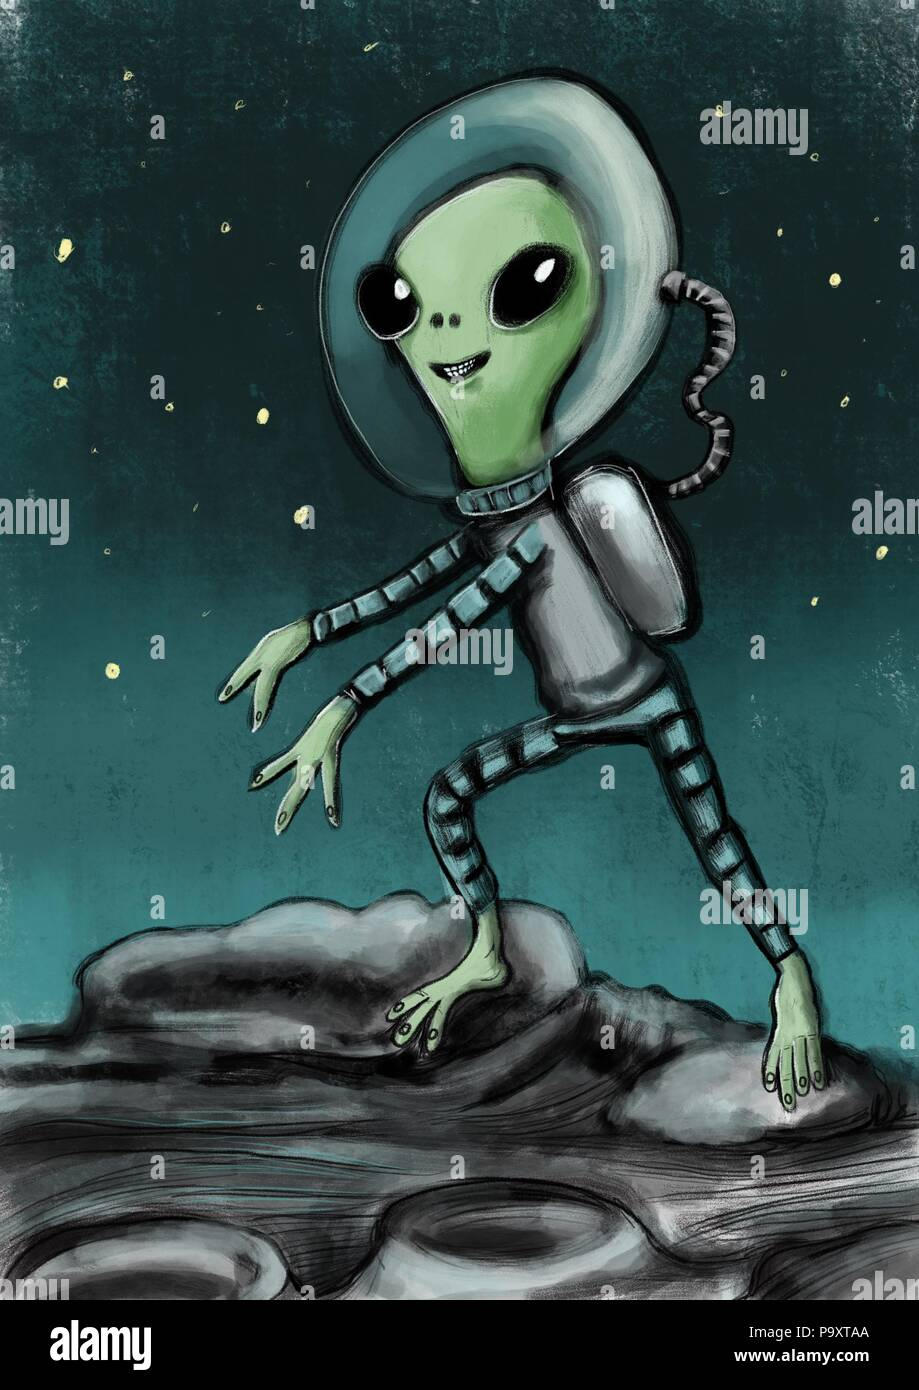 Alien creature illustration - Stock Image